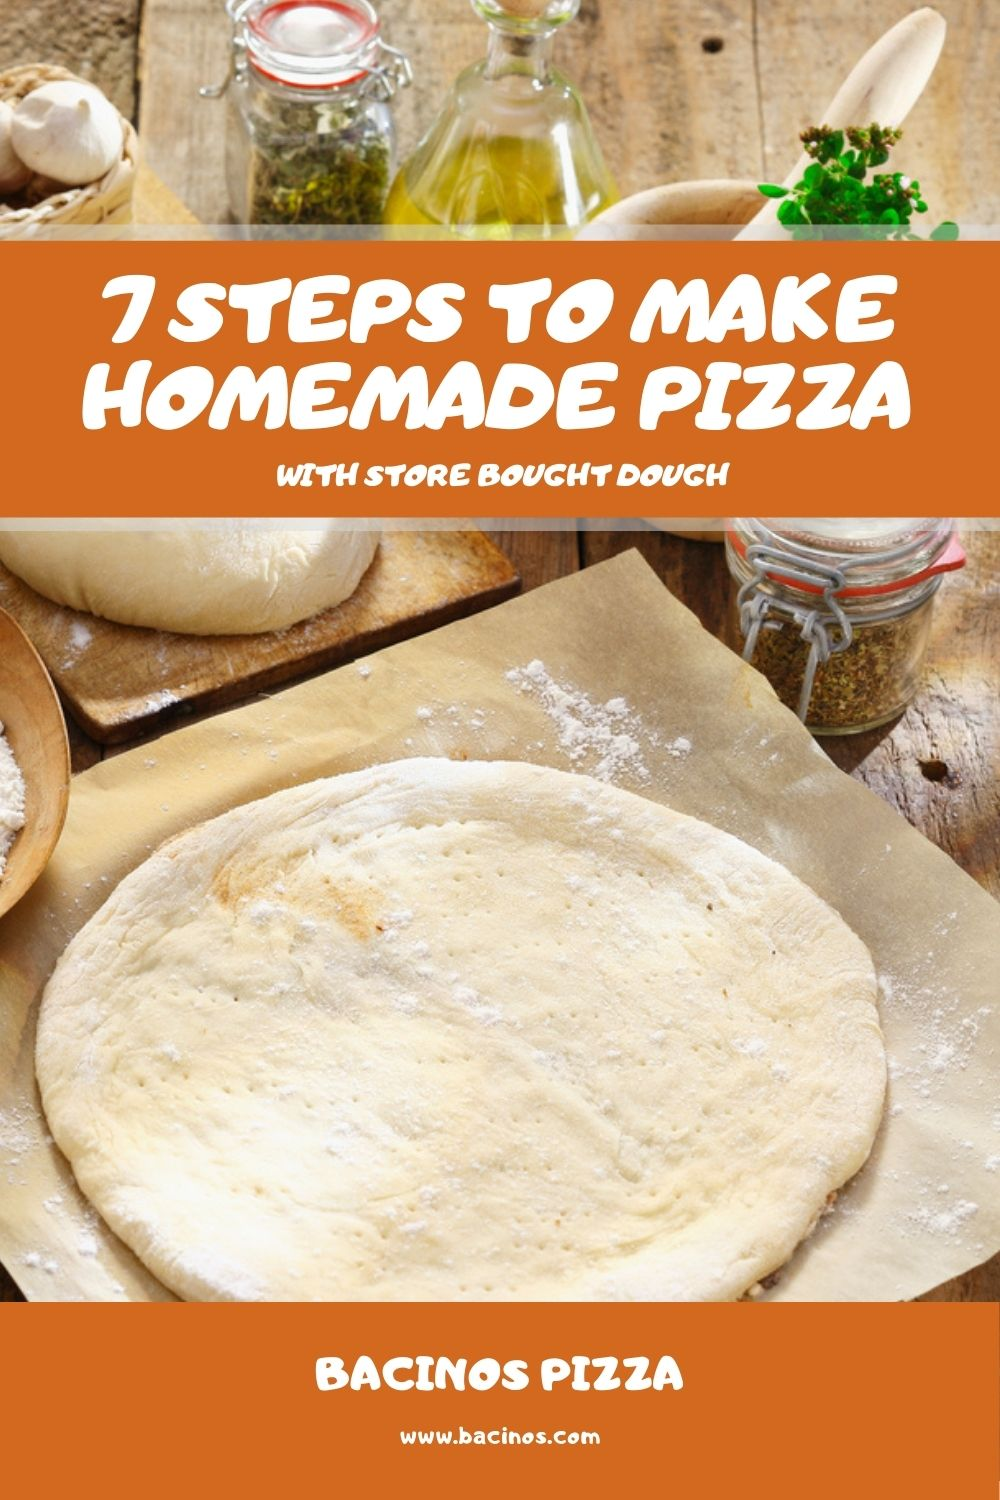 7 Steps to Make Homemade Pizza With Store Bought Dough 2